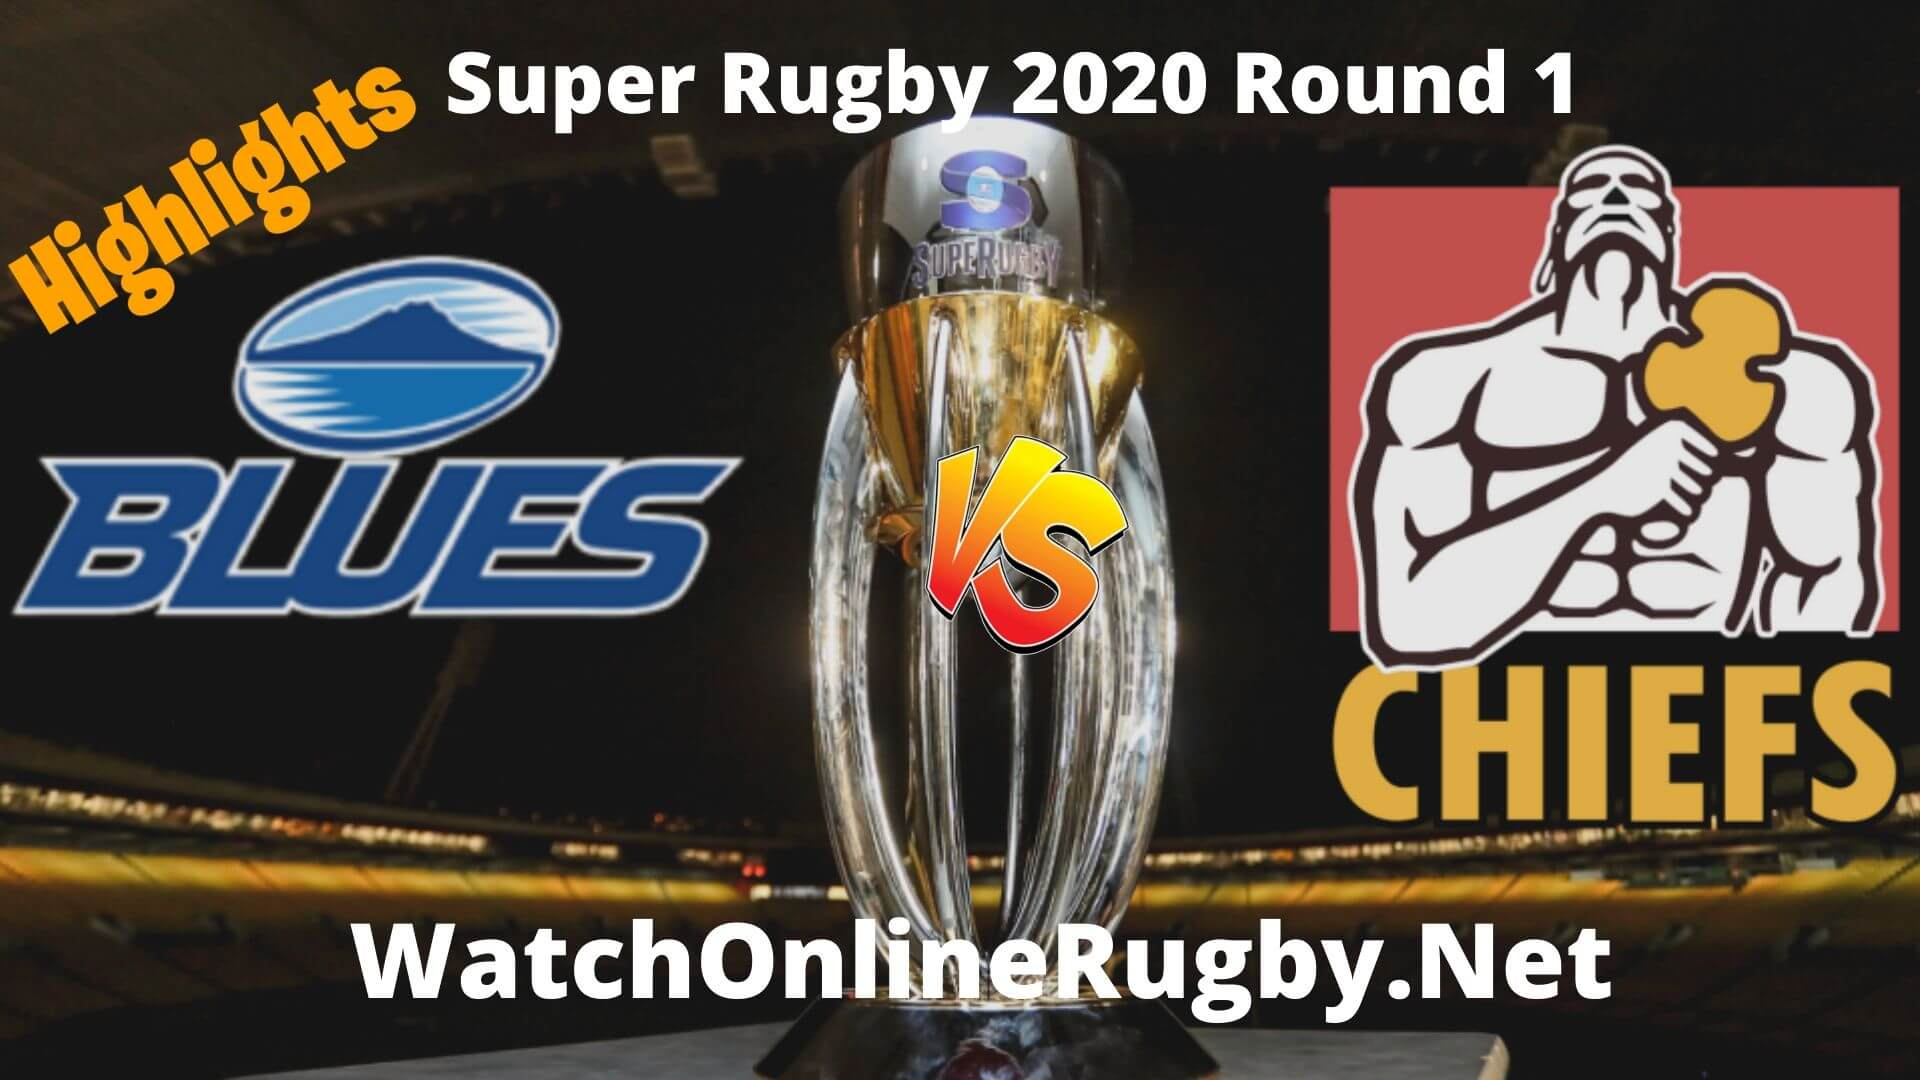 Chiefs Vs Blues Highlights Super Rugby 2020 Round 1